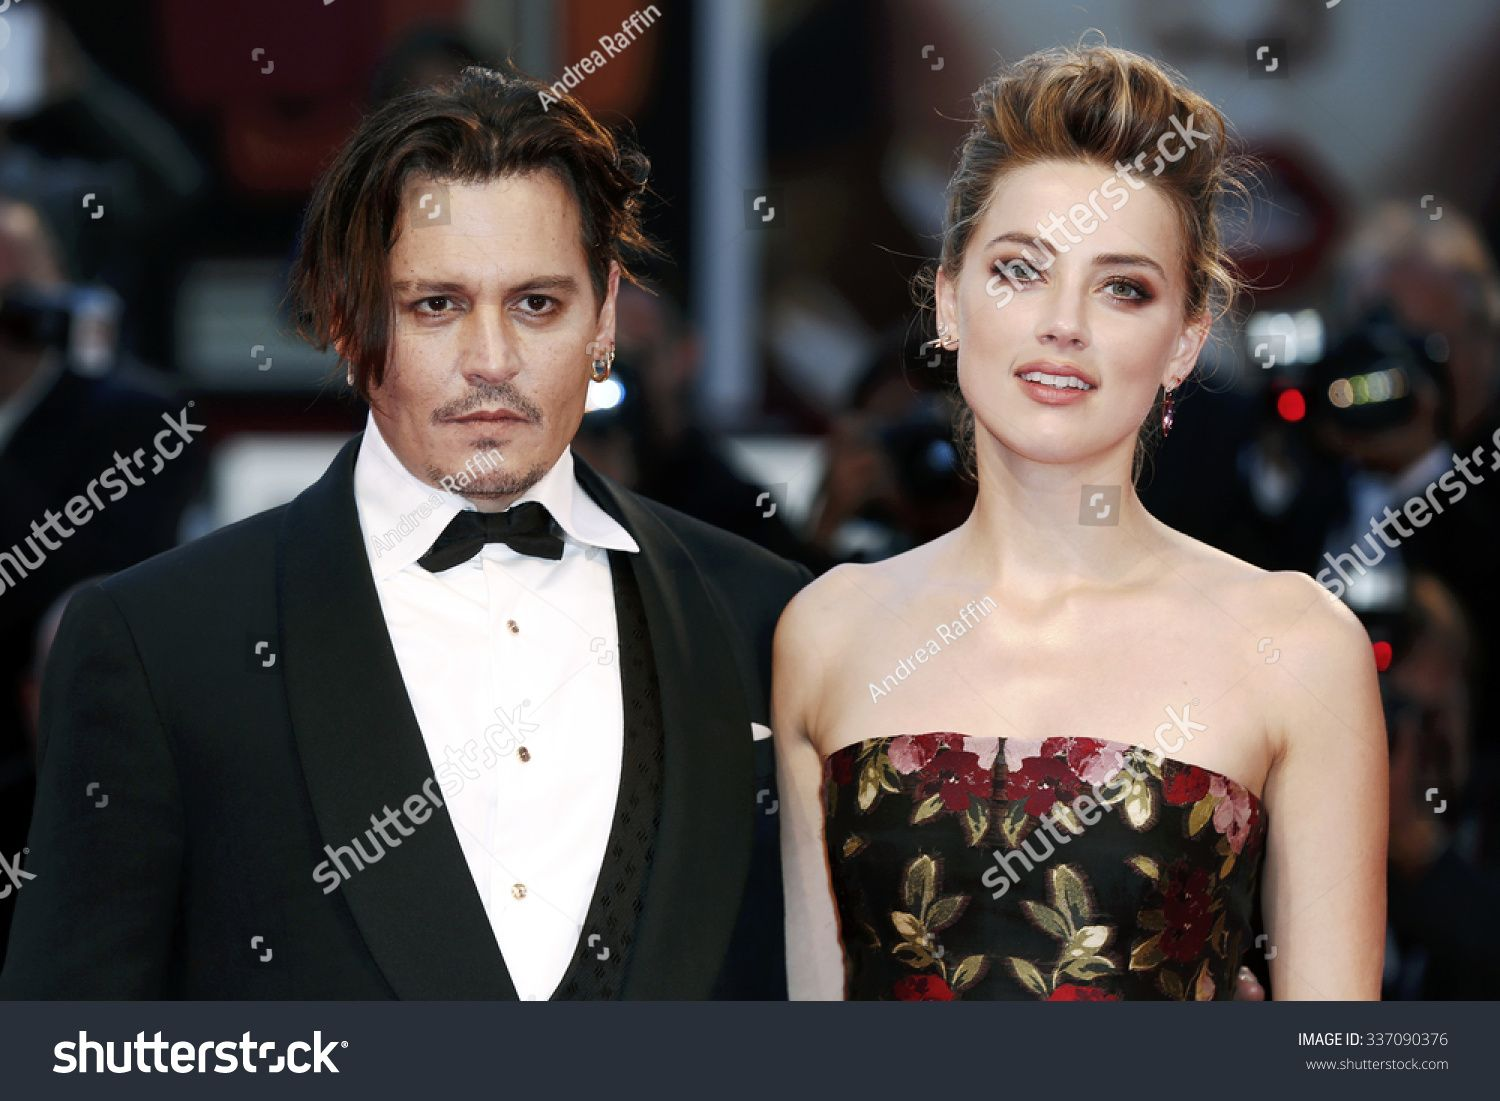 Venice Italy September 5 Johnny Depp And Amber Heard Attend The Premiere Of The Danish Girl During The 72nd Johnny Depp And Amber Johnny Depp Amber Heard